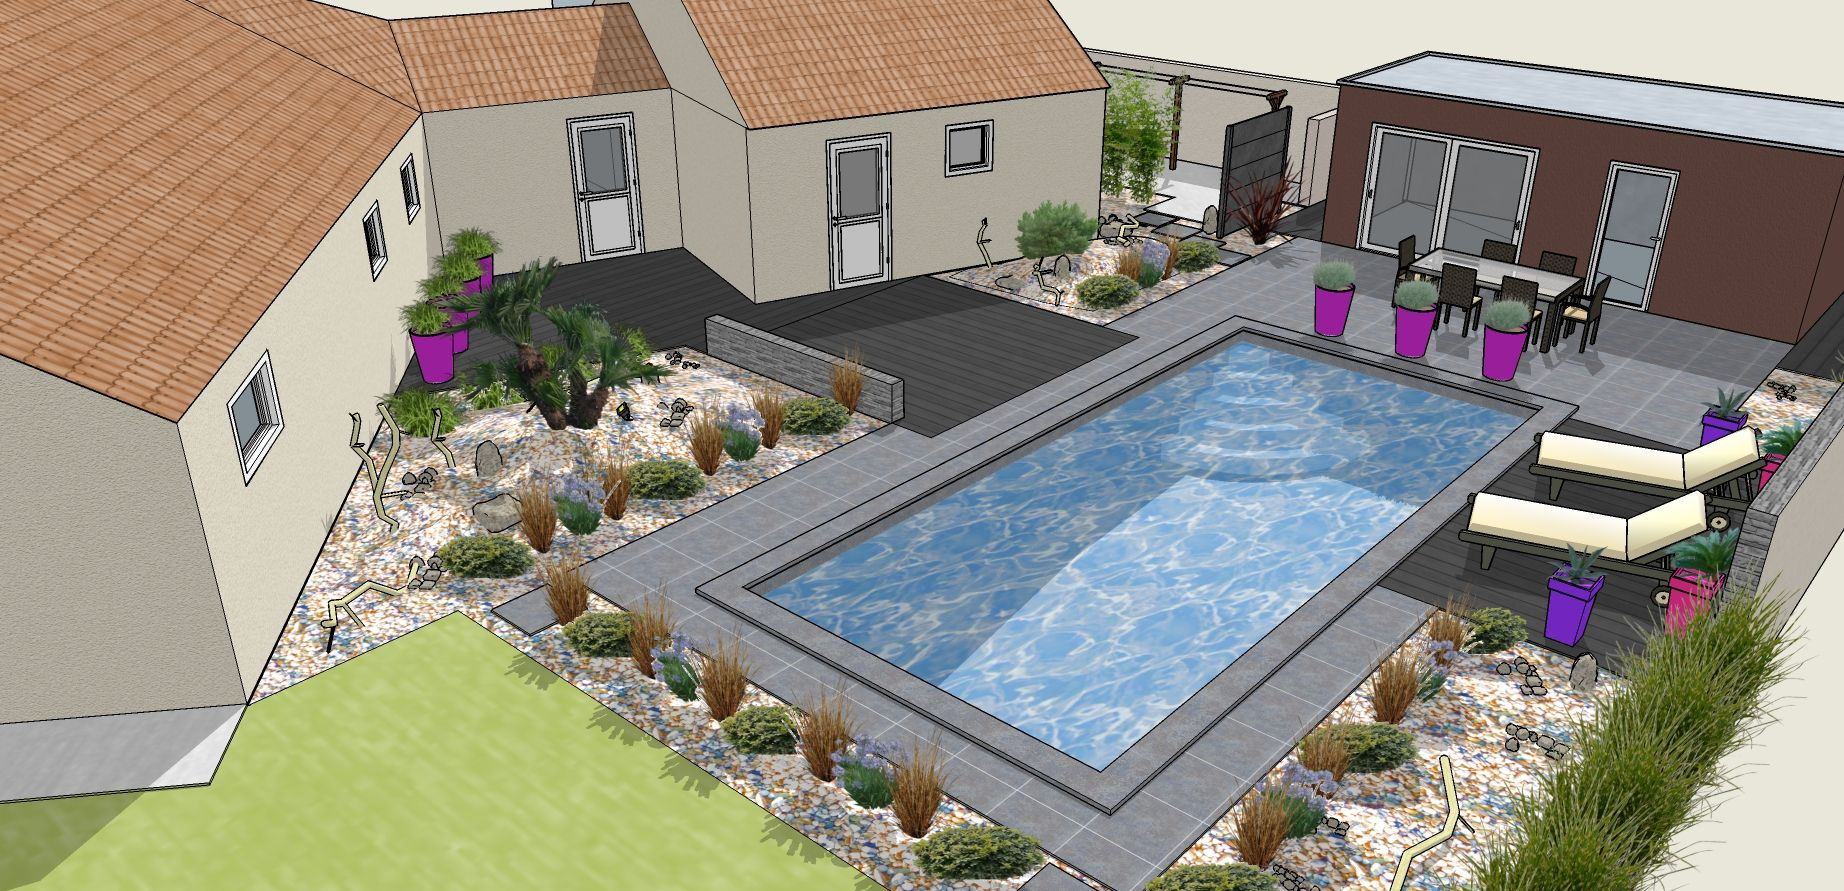 Am nagement paysager piscine creus e contemporain recherche google pour la londe pinterest for Amenagement terrasse piscine